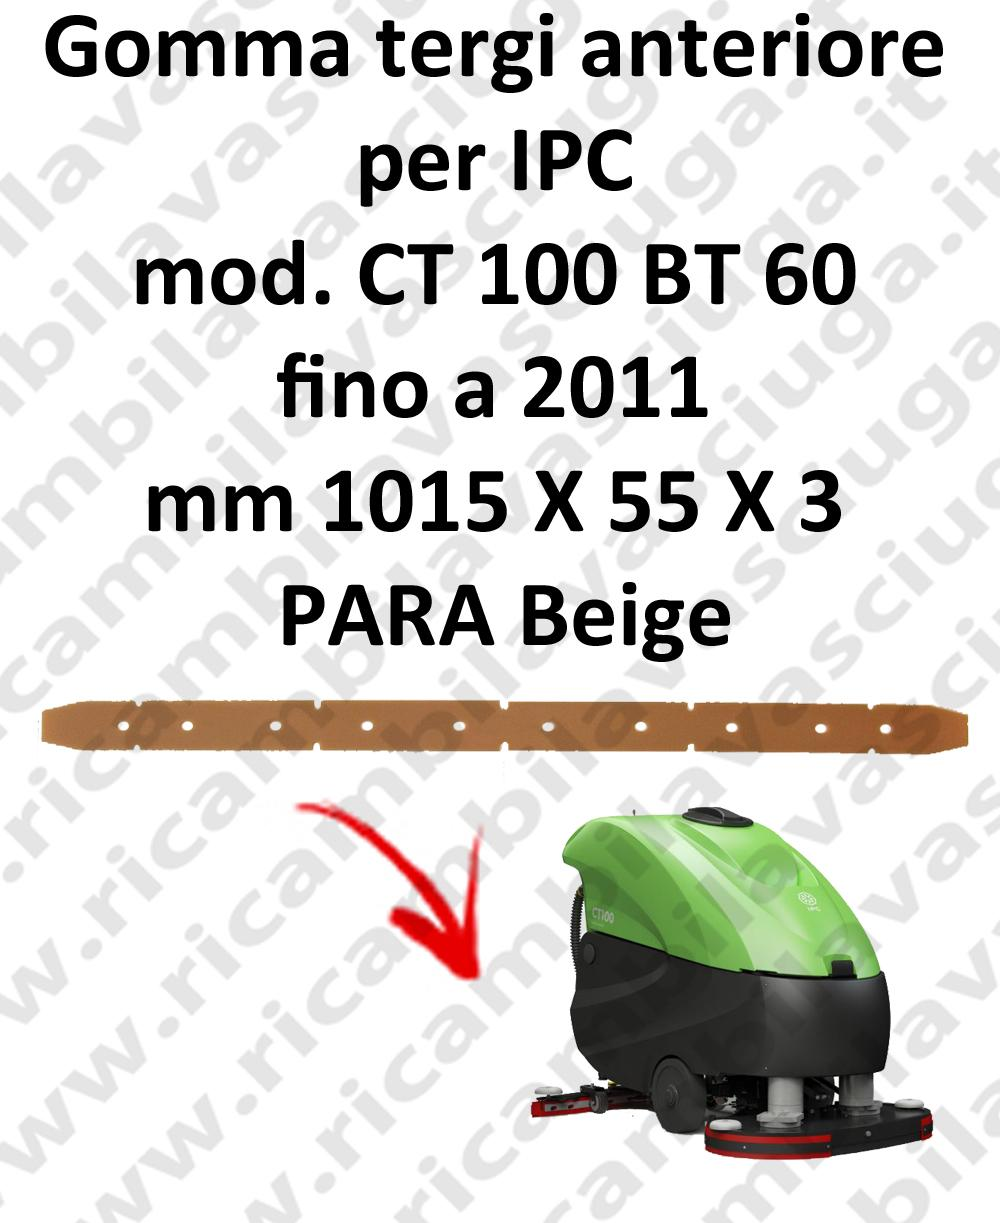 CT 100 BT 60 till 2011 Front Squeegee rubber for IPC